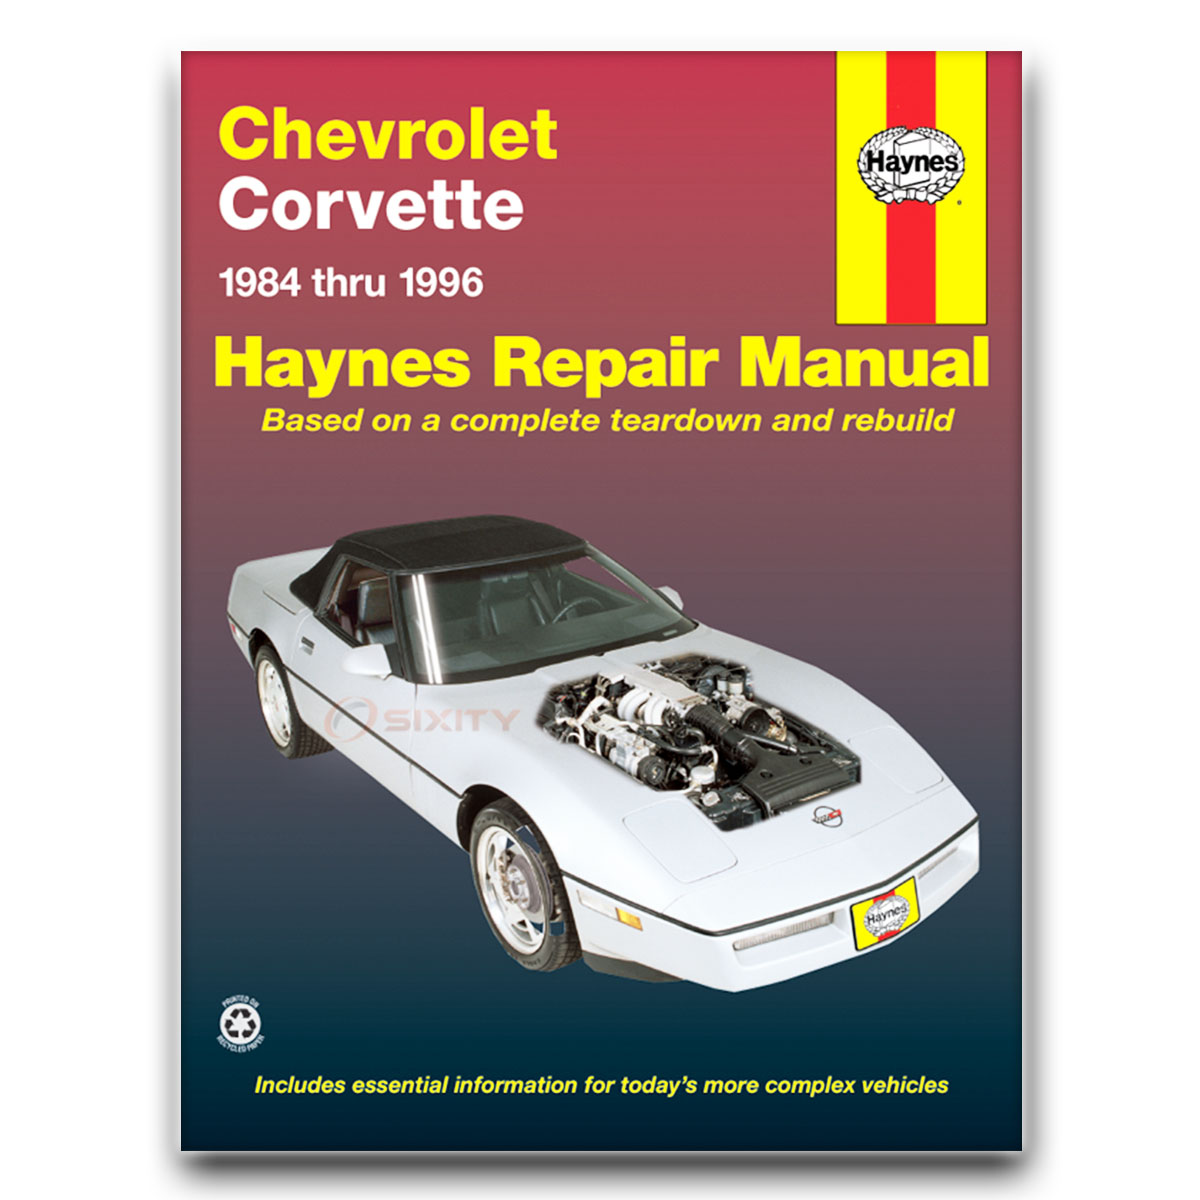 haynes chevrolet corvette 84 96 repair manual 24041 shop service rh ebay com 1984 corvette owners manual 85 Corvette